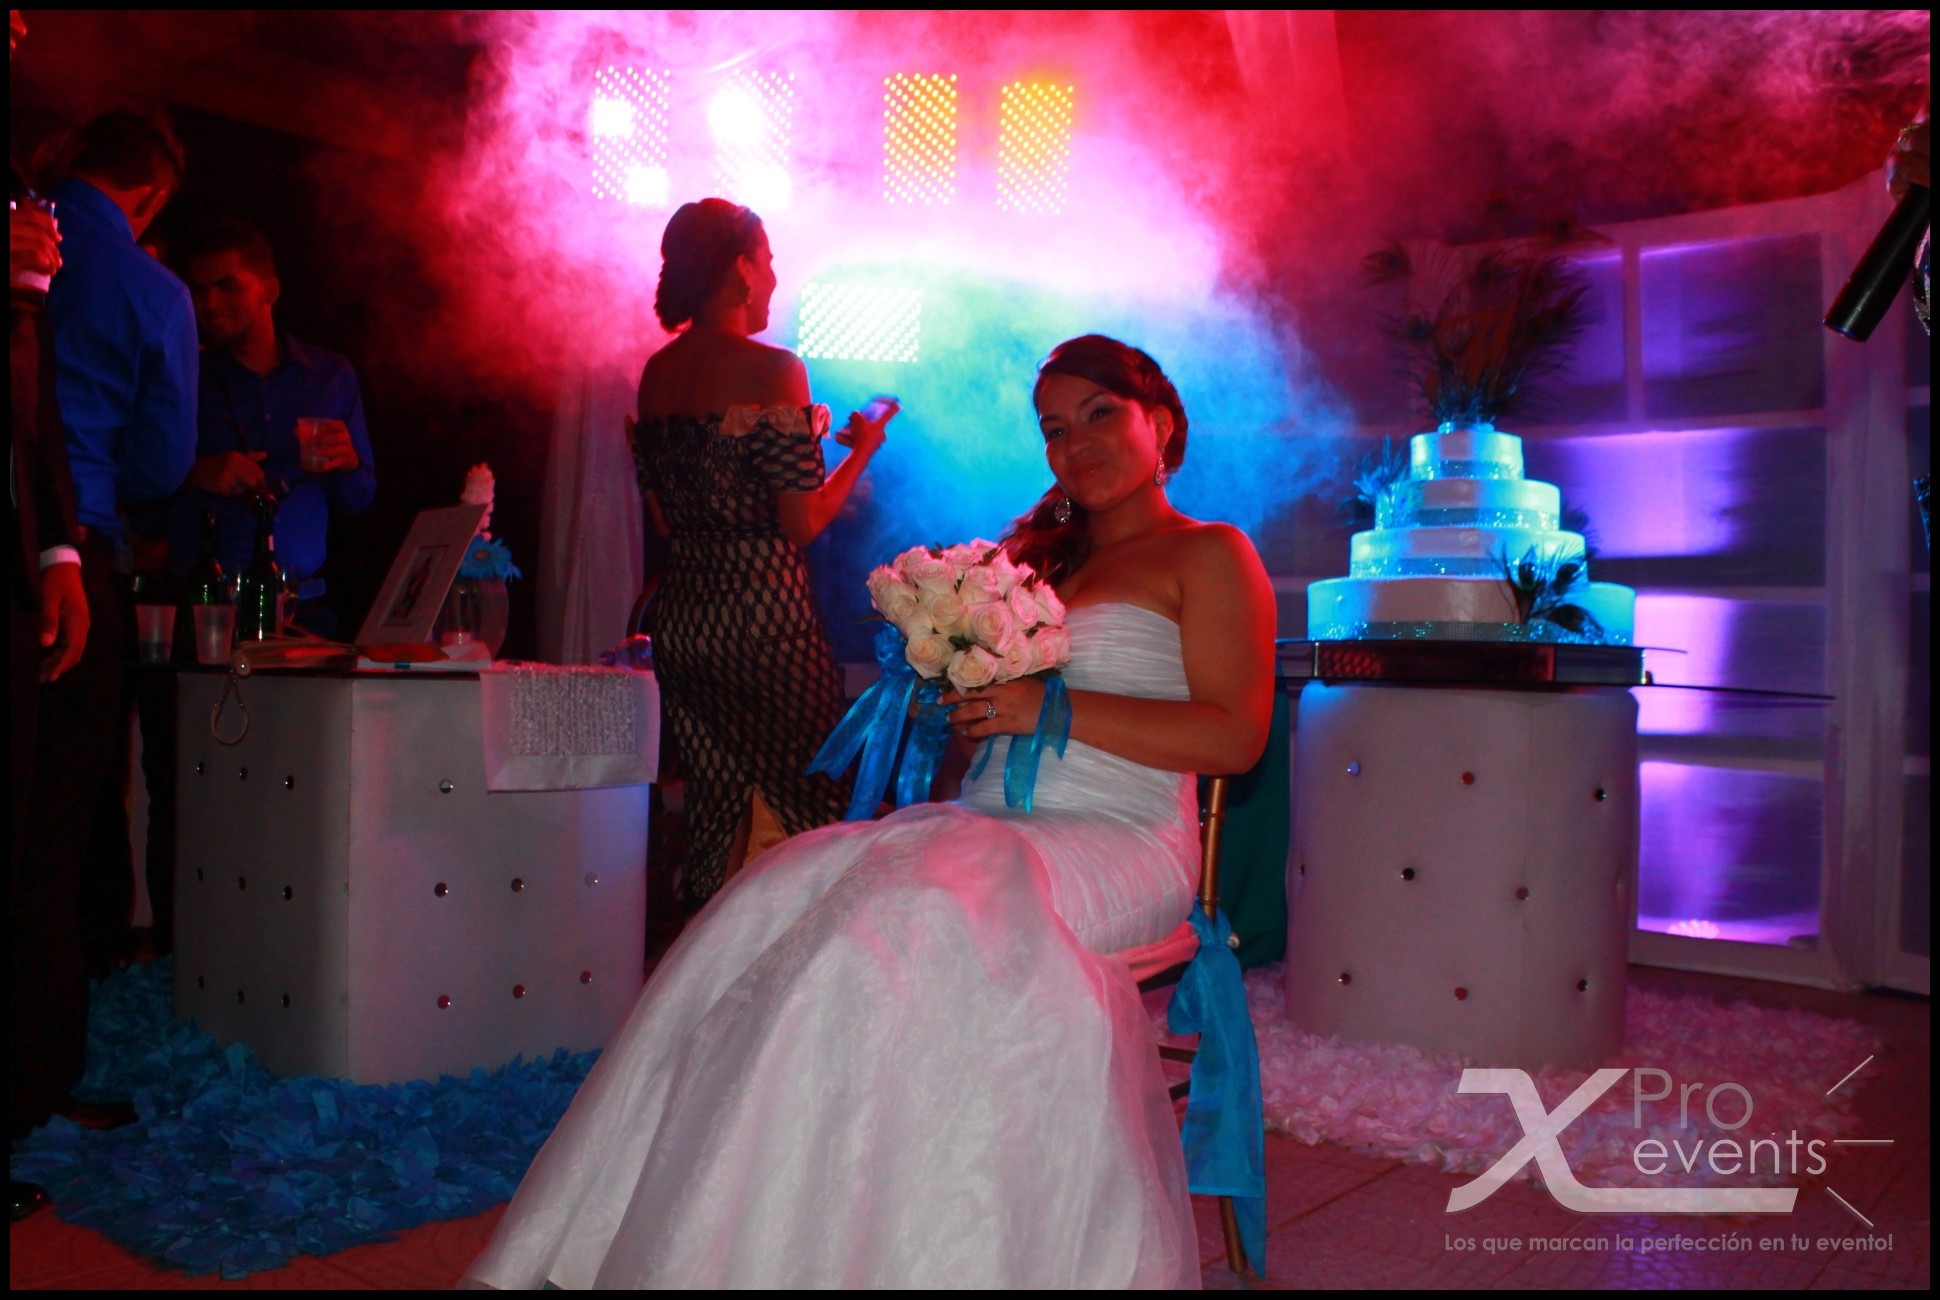 www.Xproevents.com - Luces LED para bodas y eventos.JPG